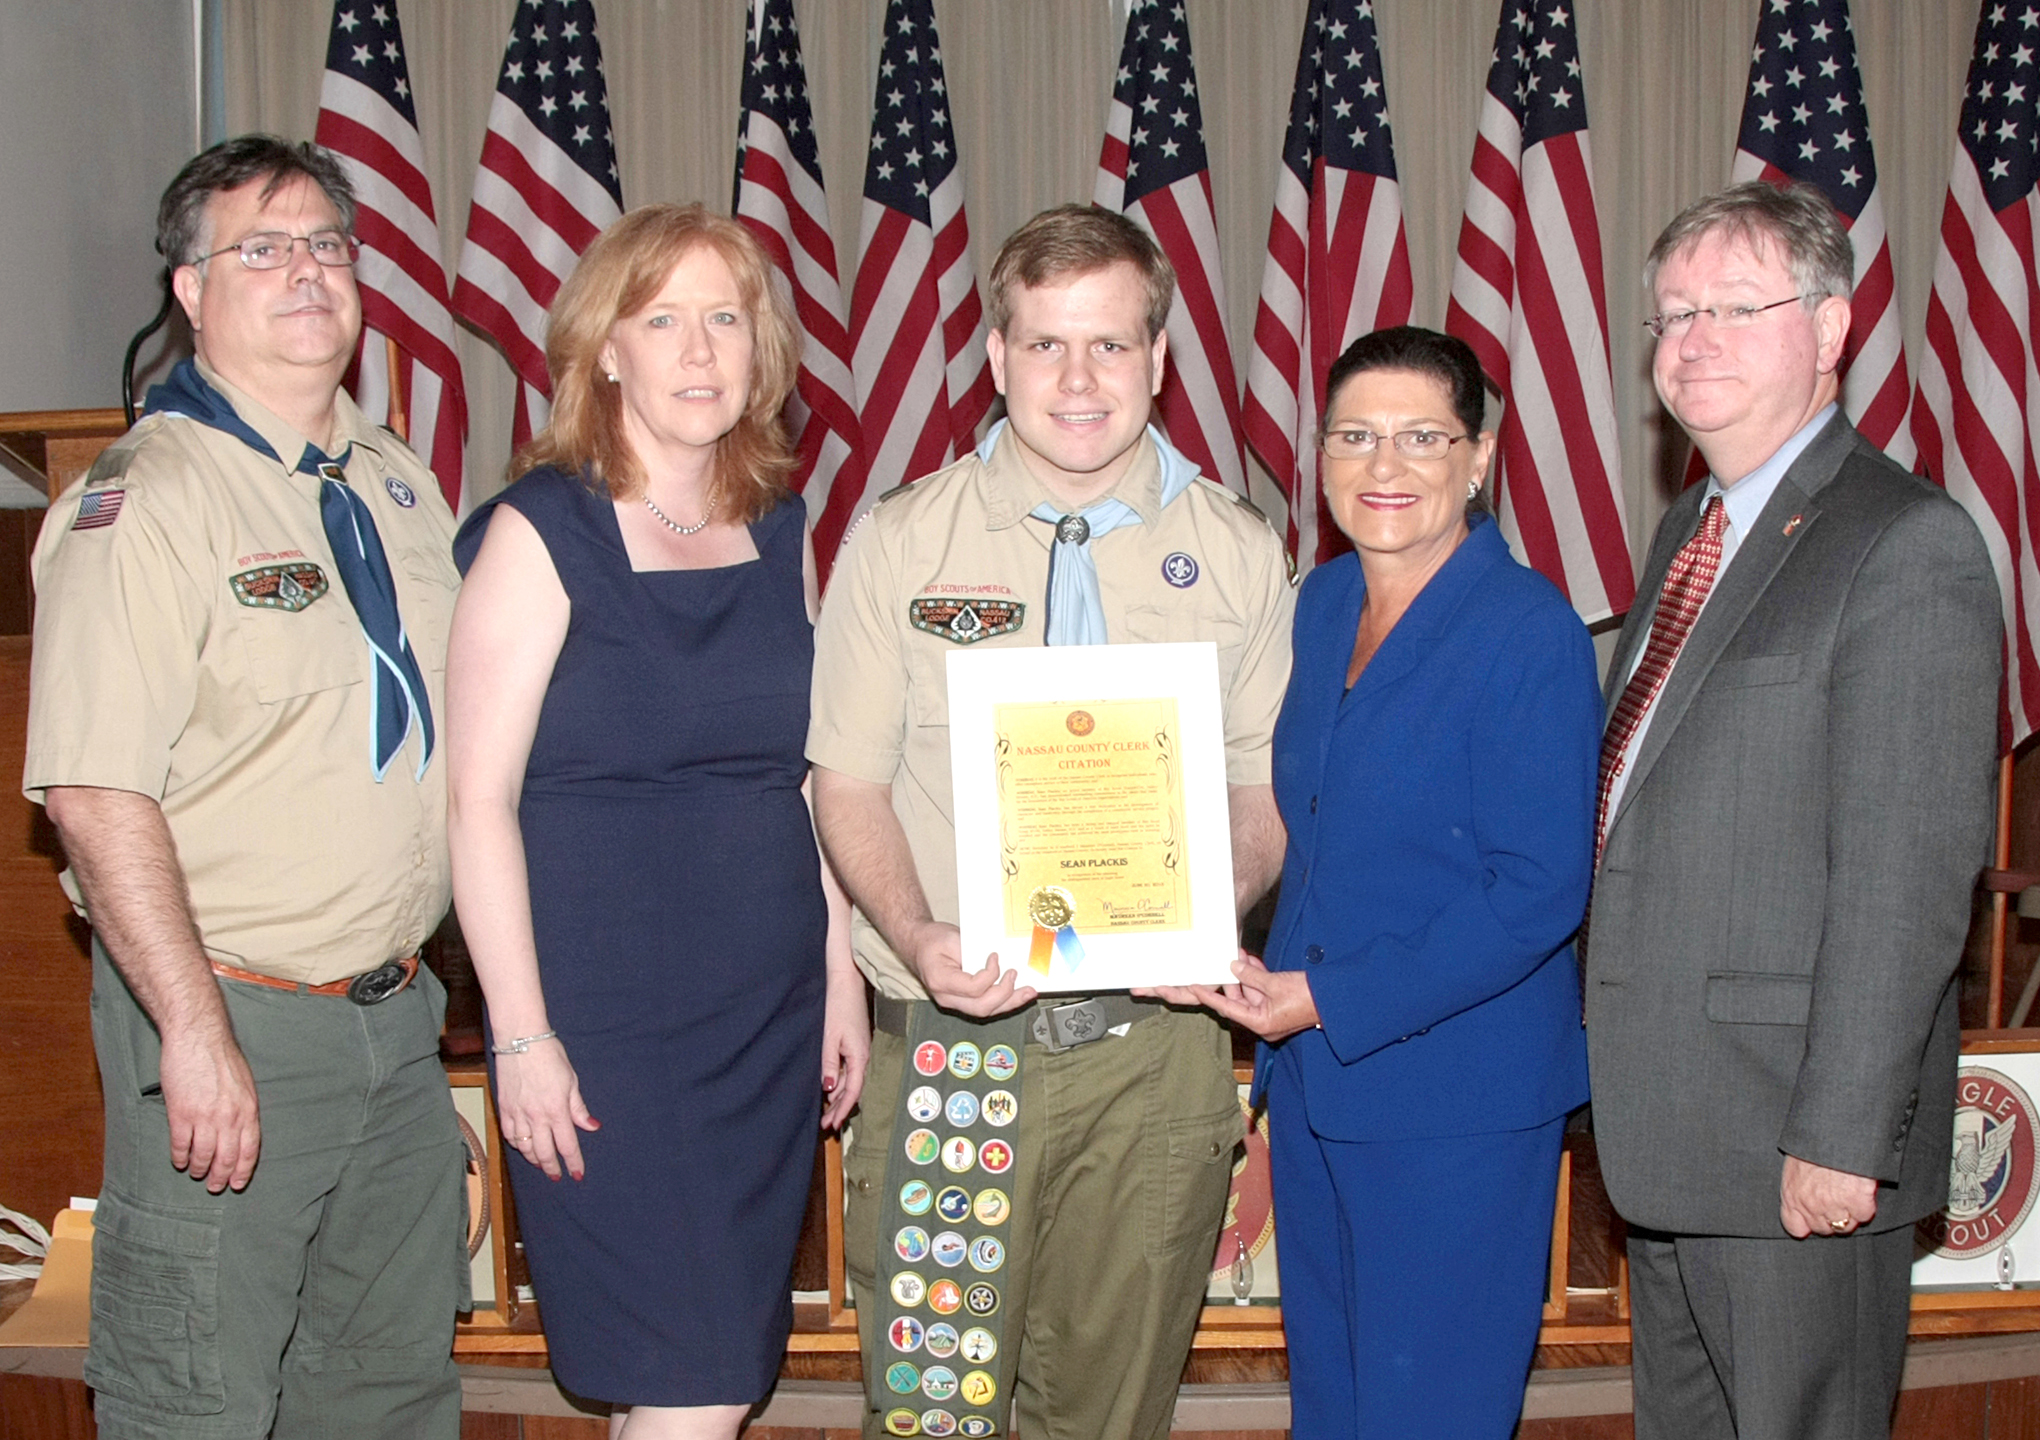 Nassau County Clerk Maureen OConnell joined Boy Scout Troop  116 of Valley Stream at their Eagle Scout Court of Honor Ceremony for Sean Plackis